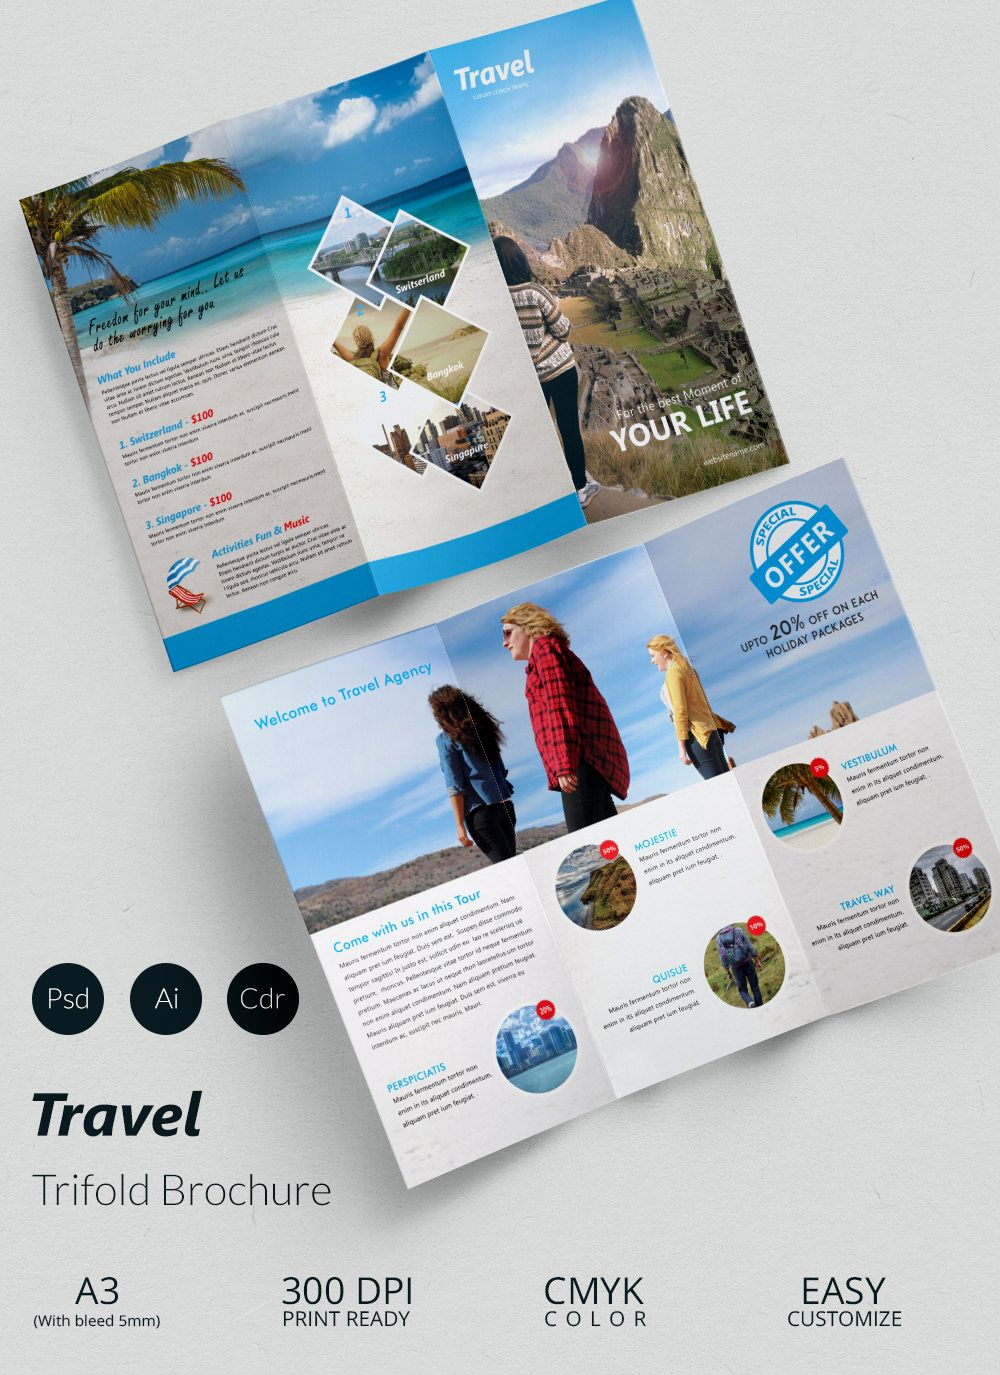 Travel A3 Trifold Brochure Template  Microsoft Trifold Template